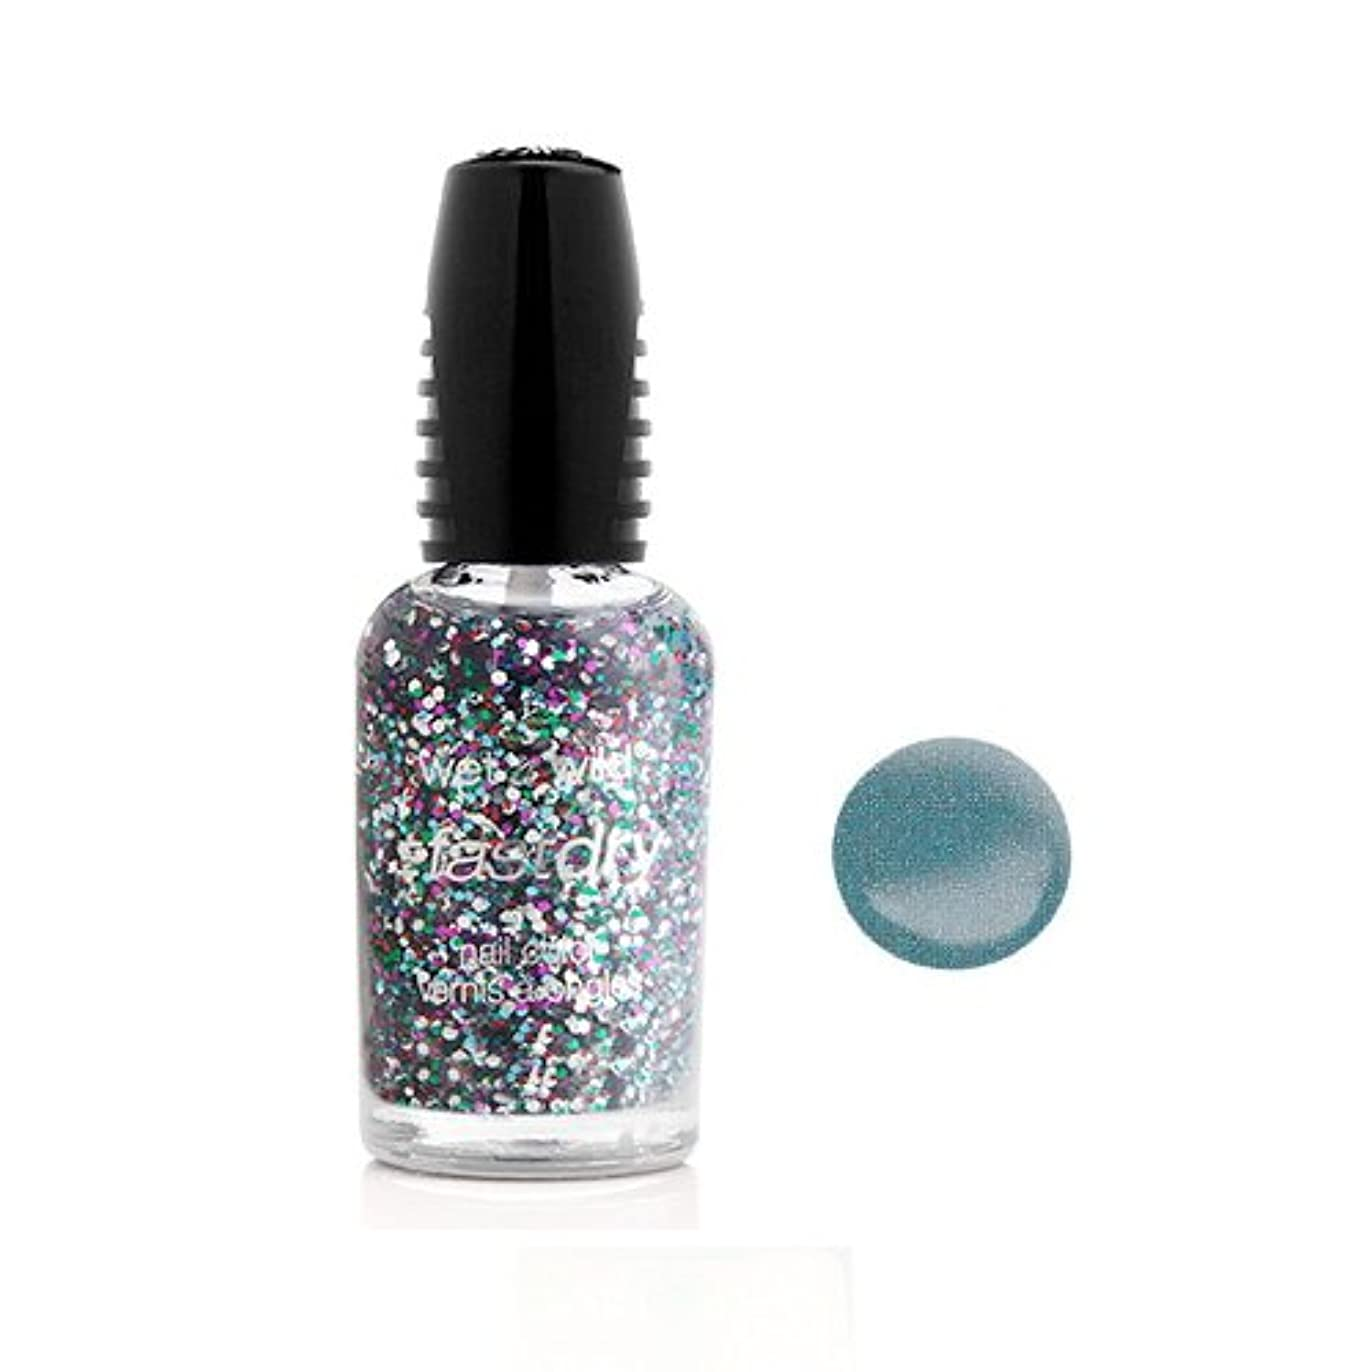 (6 Pack) WET N WILD Fastdry Nail Color - Blue Wants To Be A Millionaire (DC) (並行輸入品)